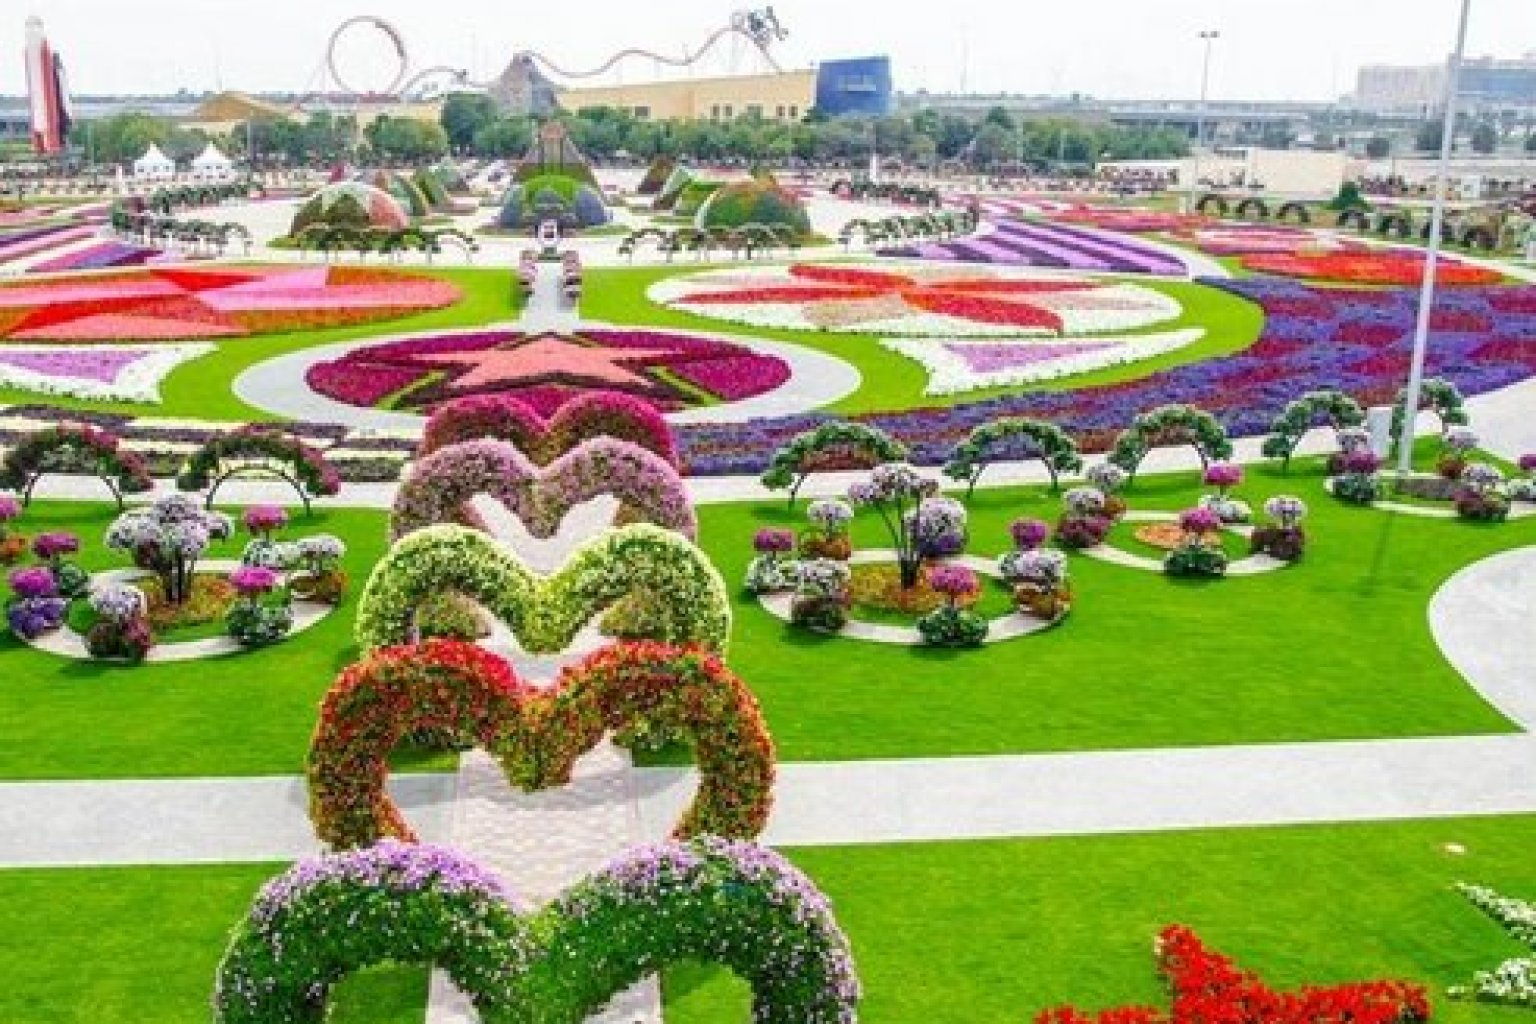 Dubai Miracle Garden Is One Of The Most Amazing Things Weu0027ve Seen (PHOTOS,  VIDEO) | HuffPost